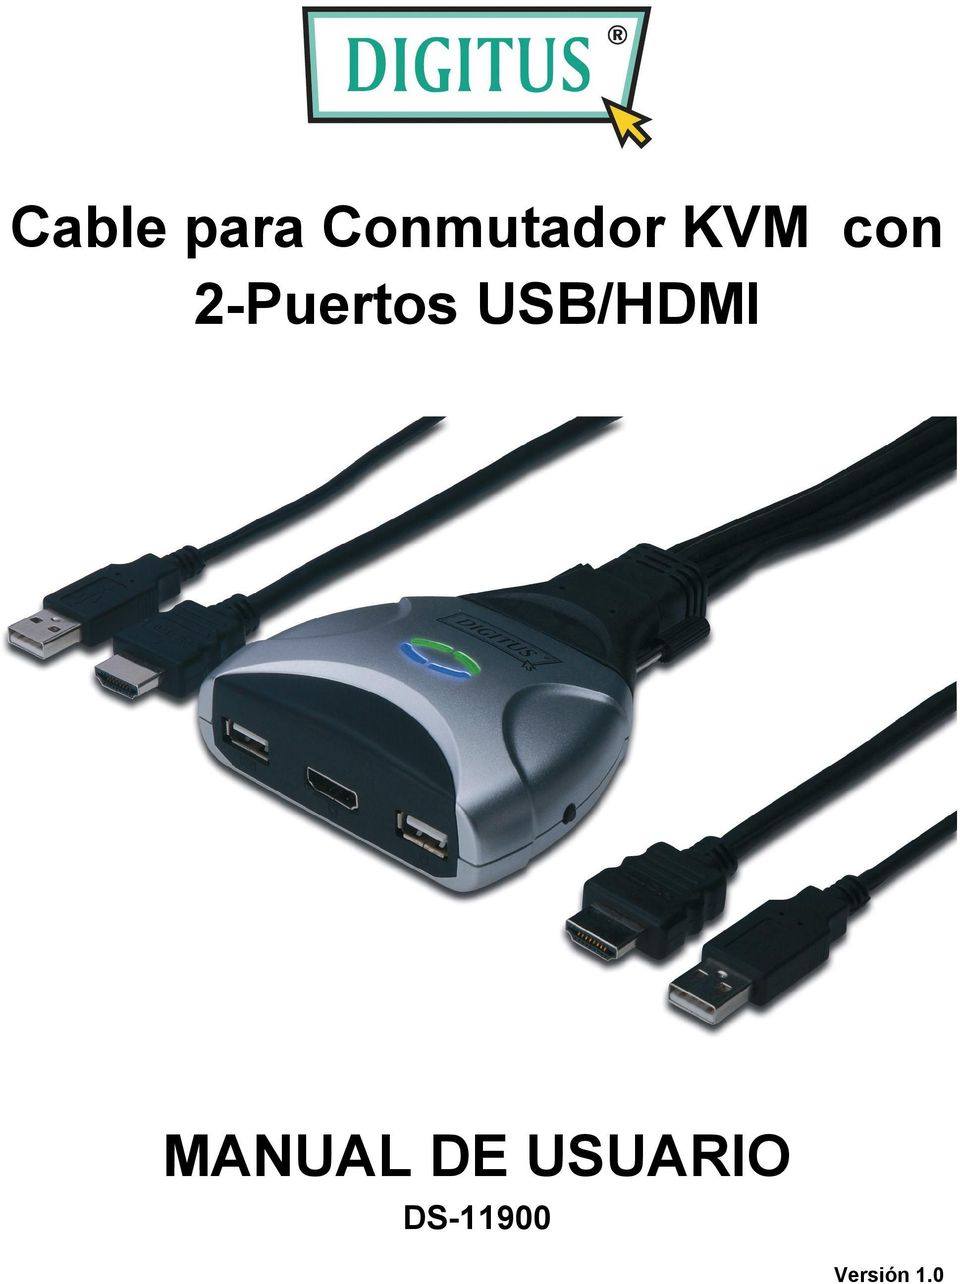 USB/HDMI MANUAL DE